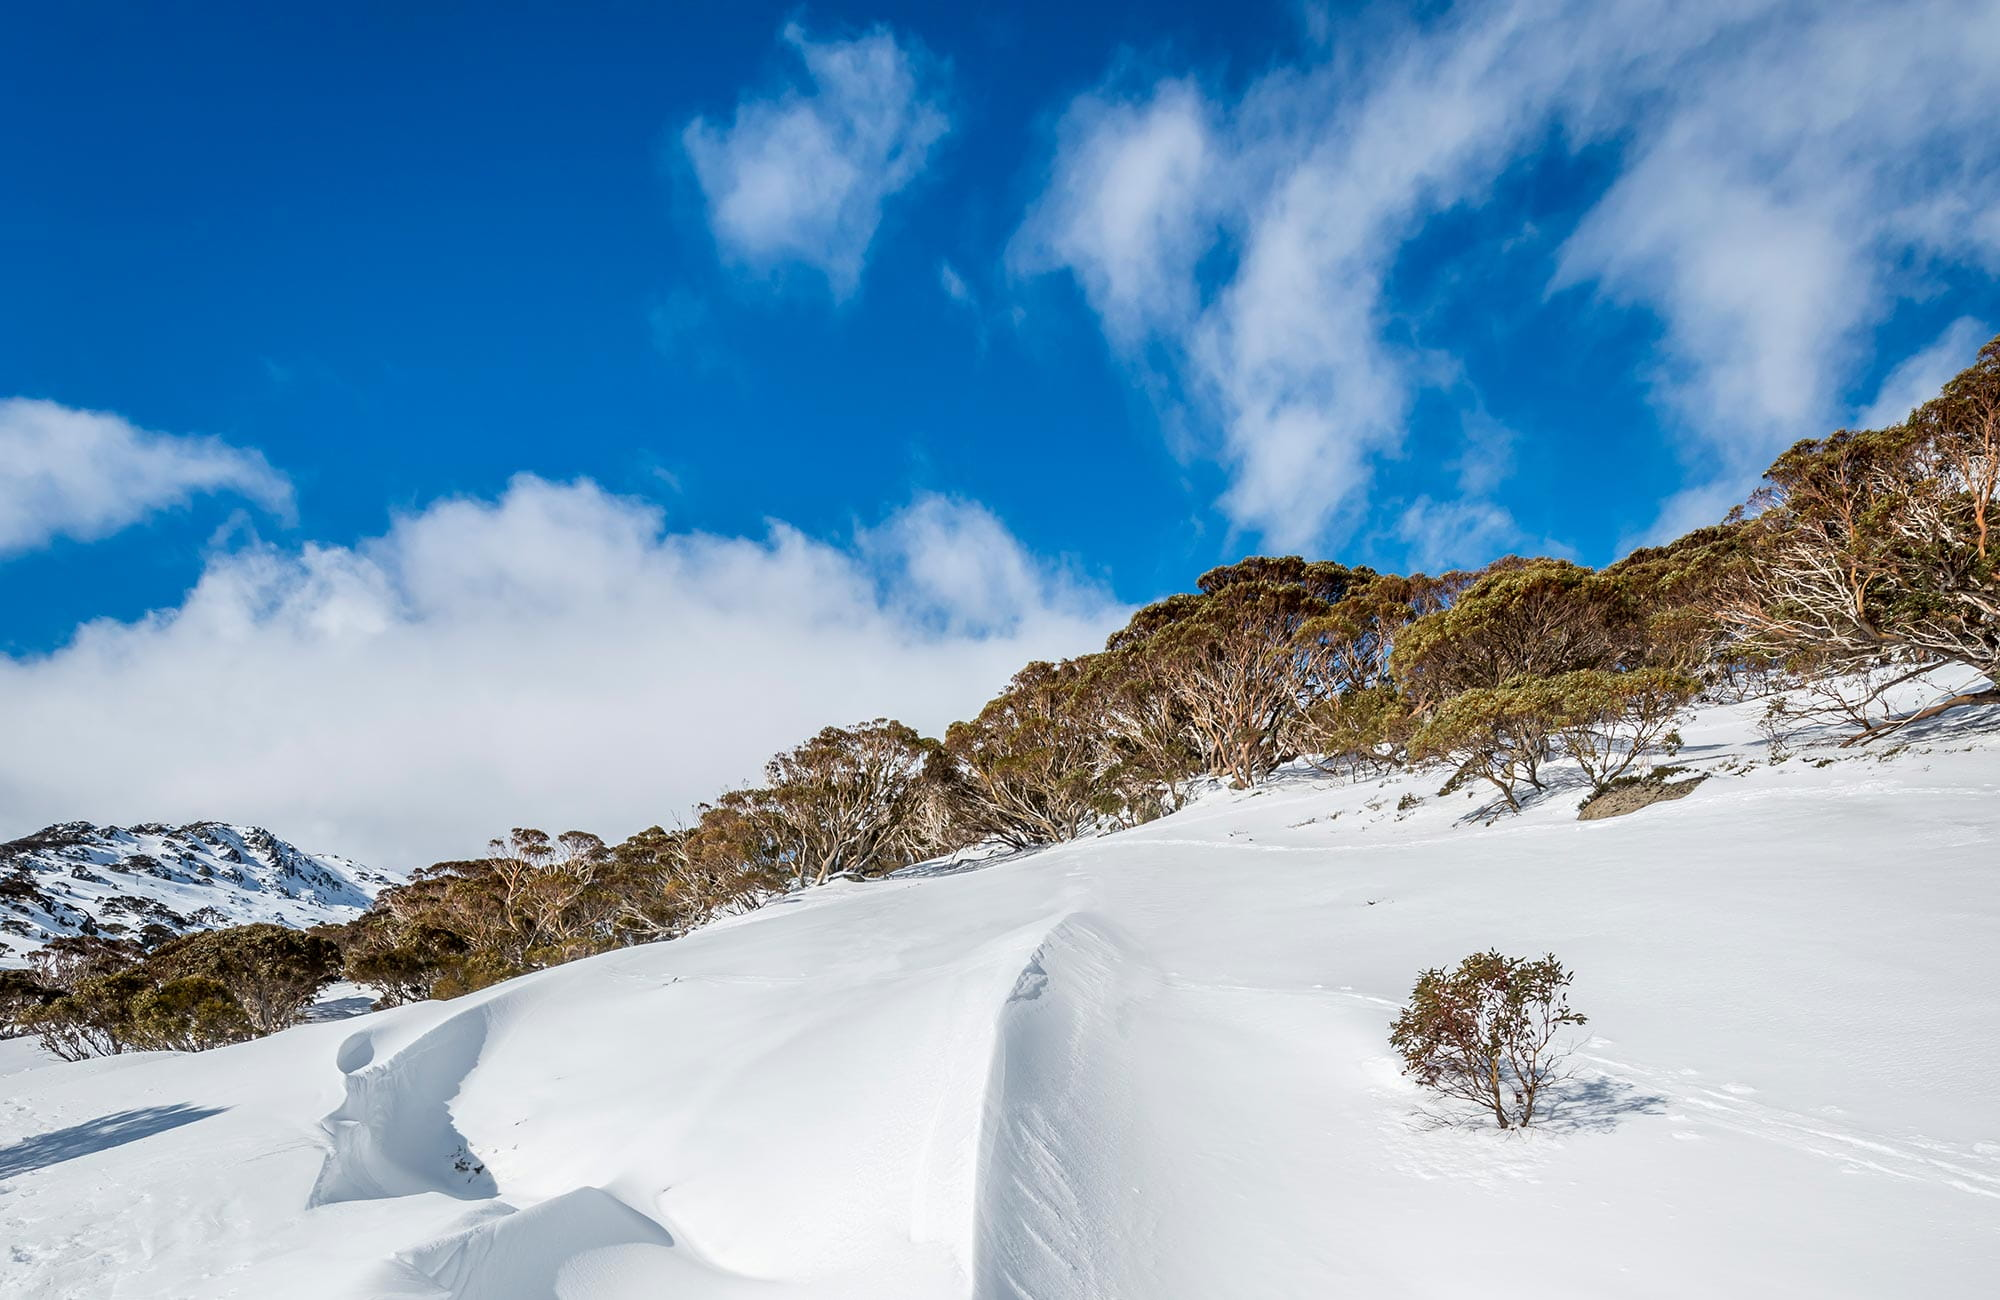 Winter snow and snow gums in Kosciuszko National Park. Photo: John Spencer